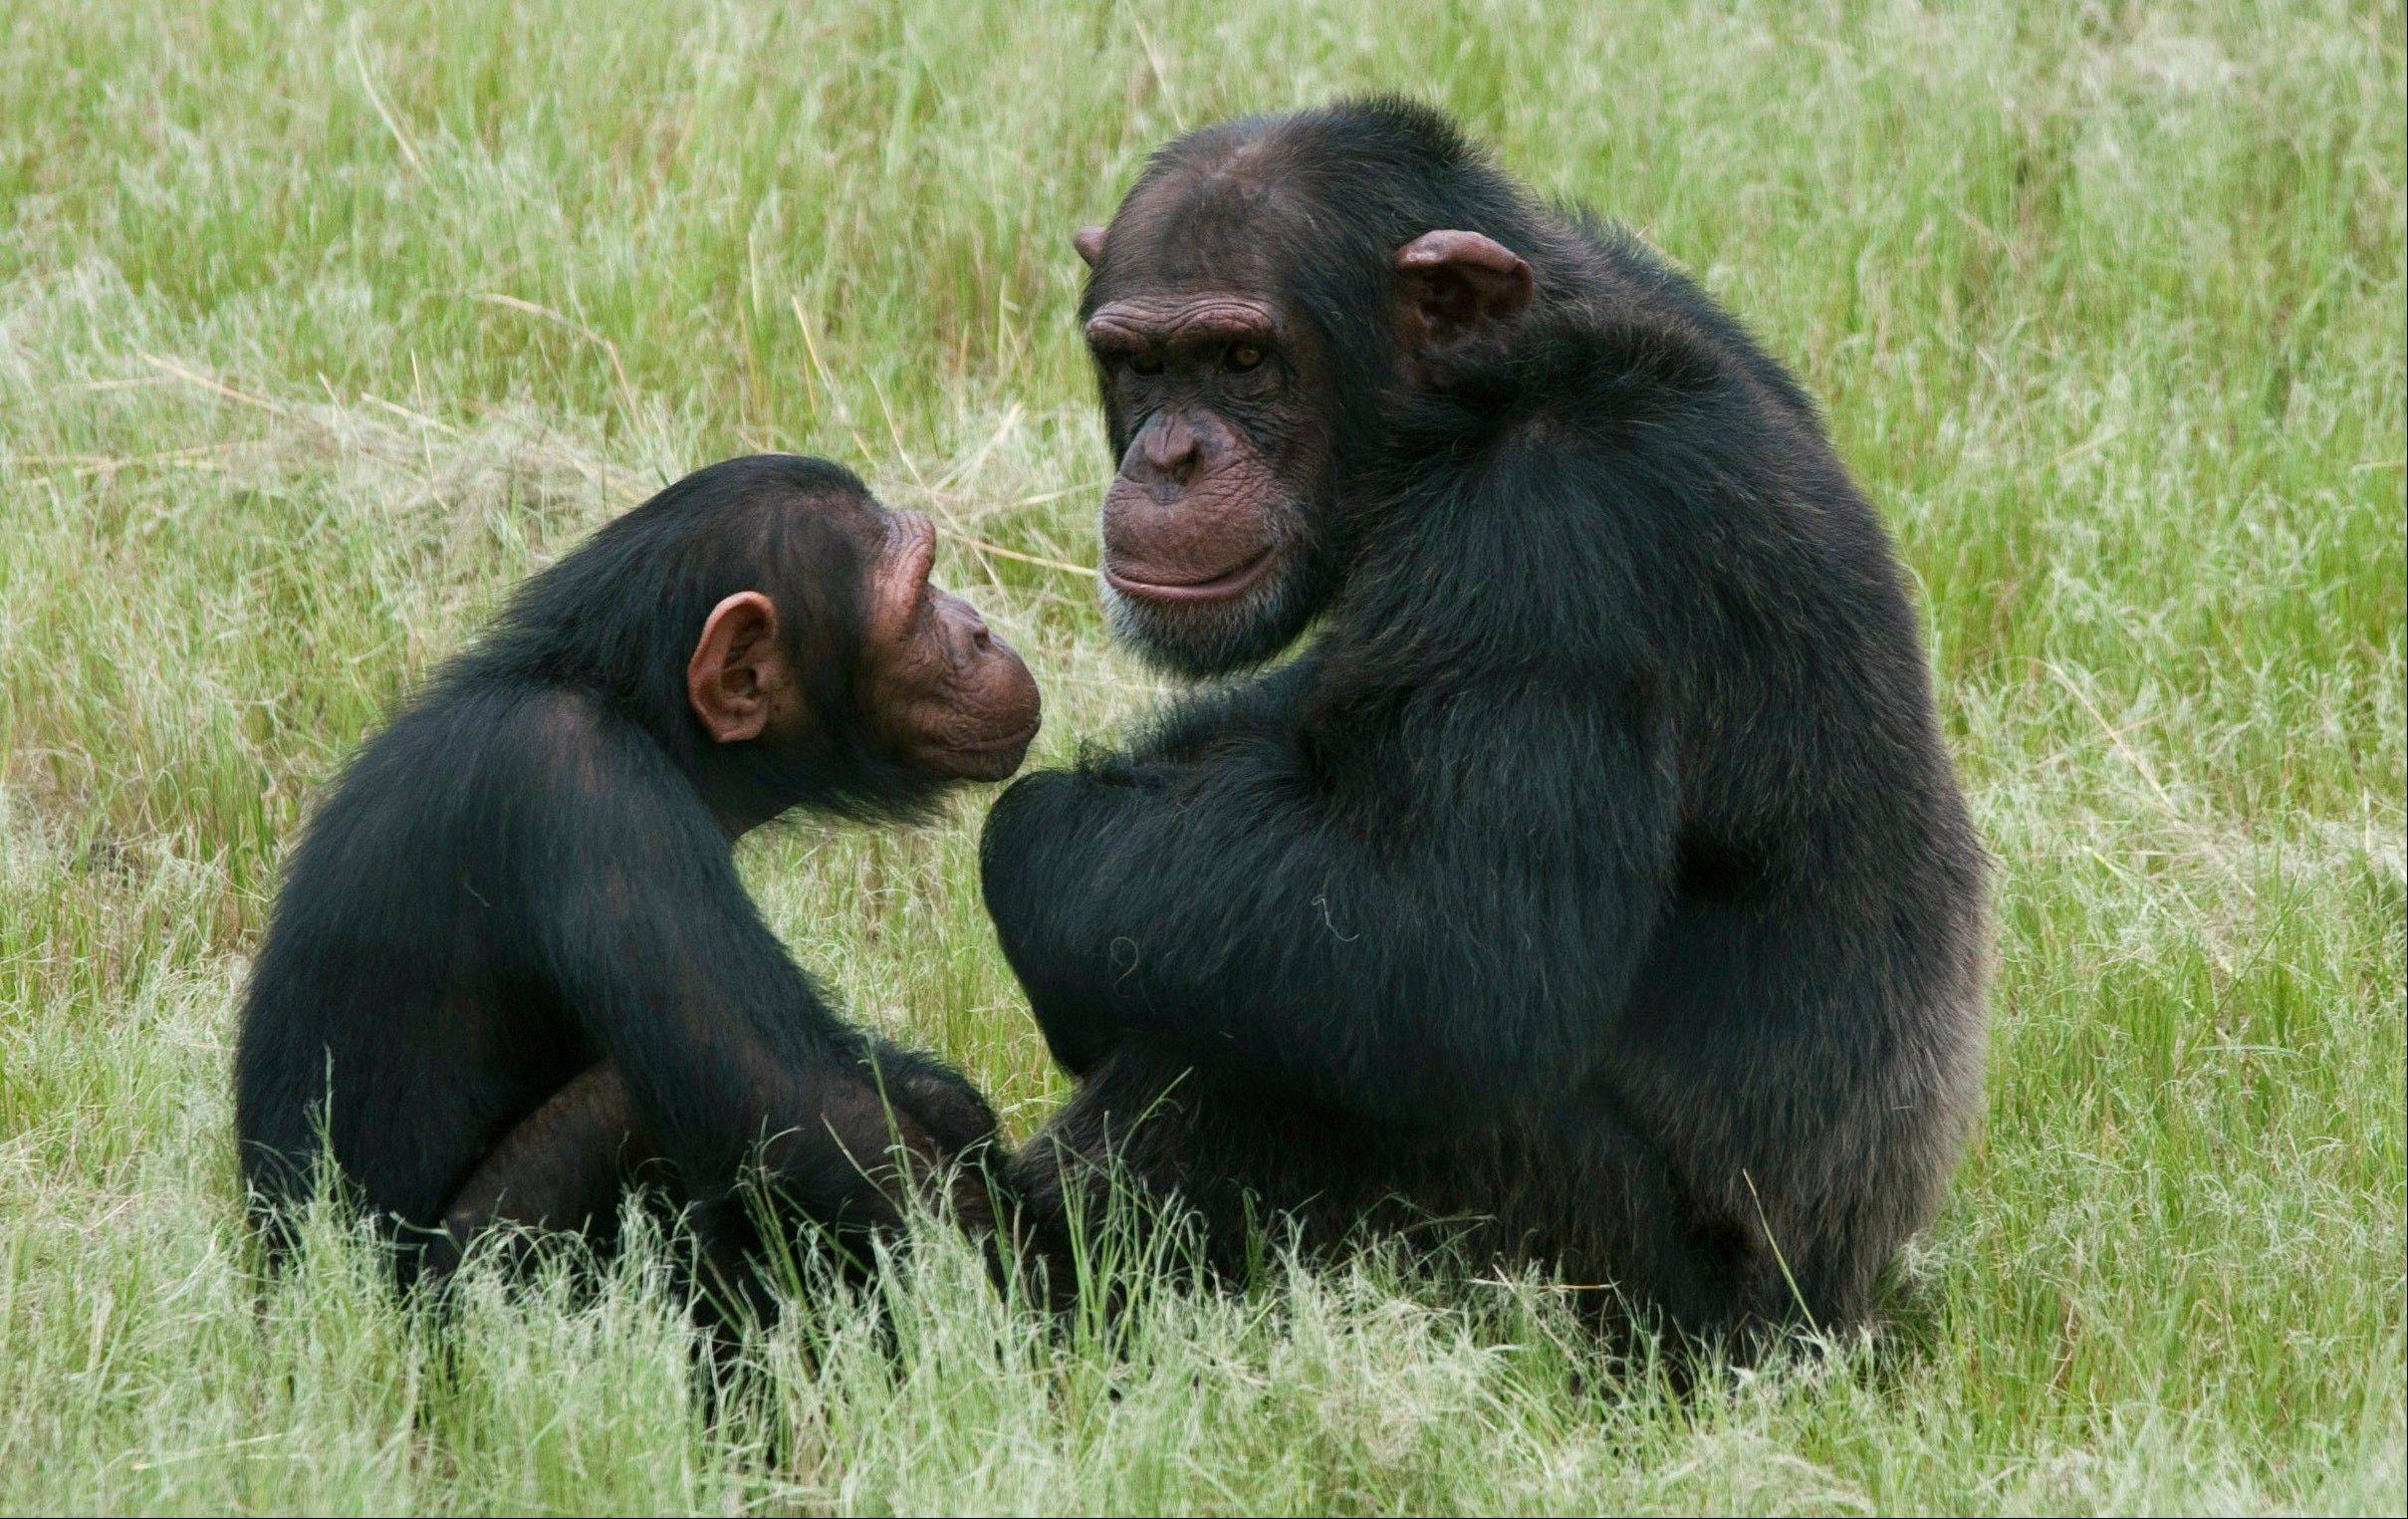 Chimpanzees sit in an enclosure at the Chimpanzee Eden rehabilitation center, near Nelspruit, South Africa.